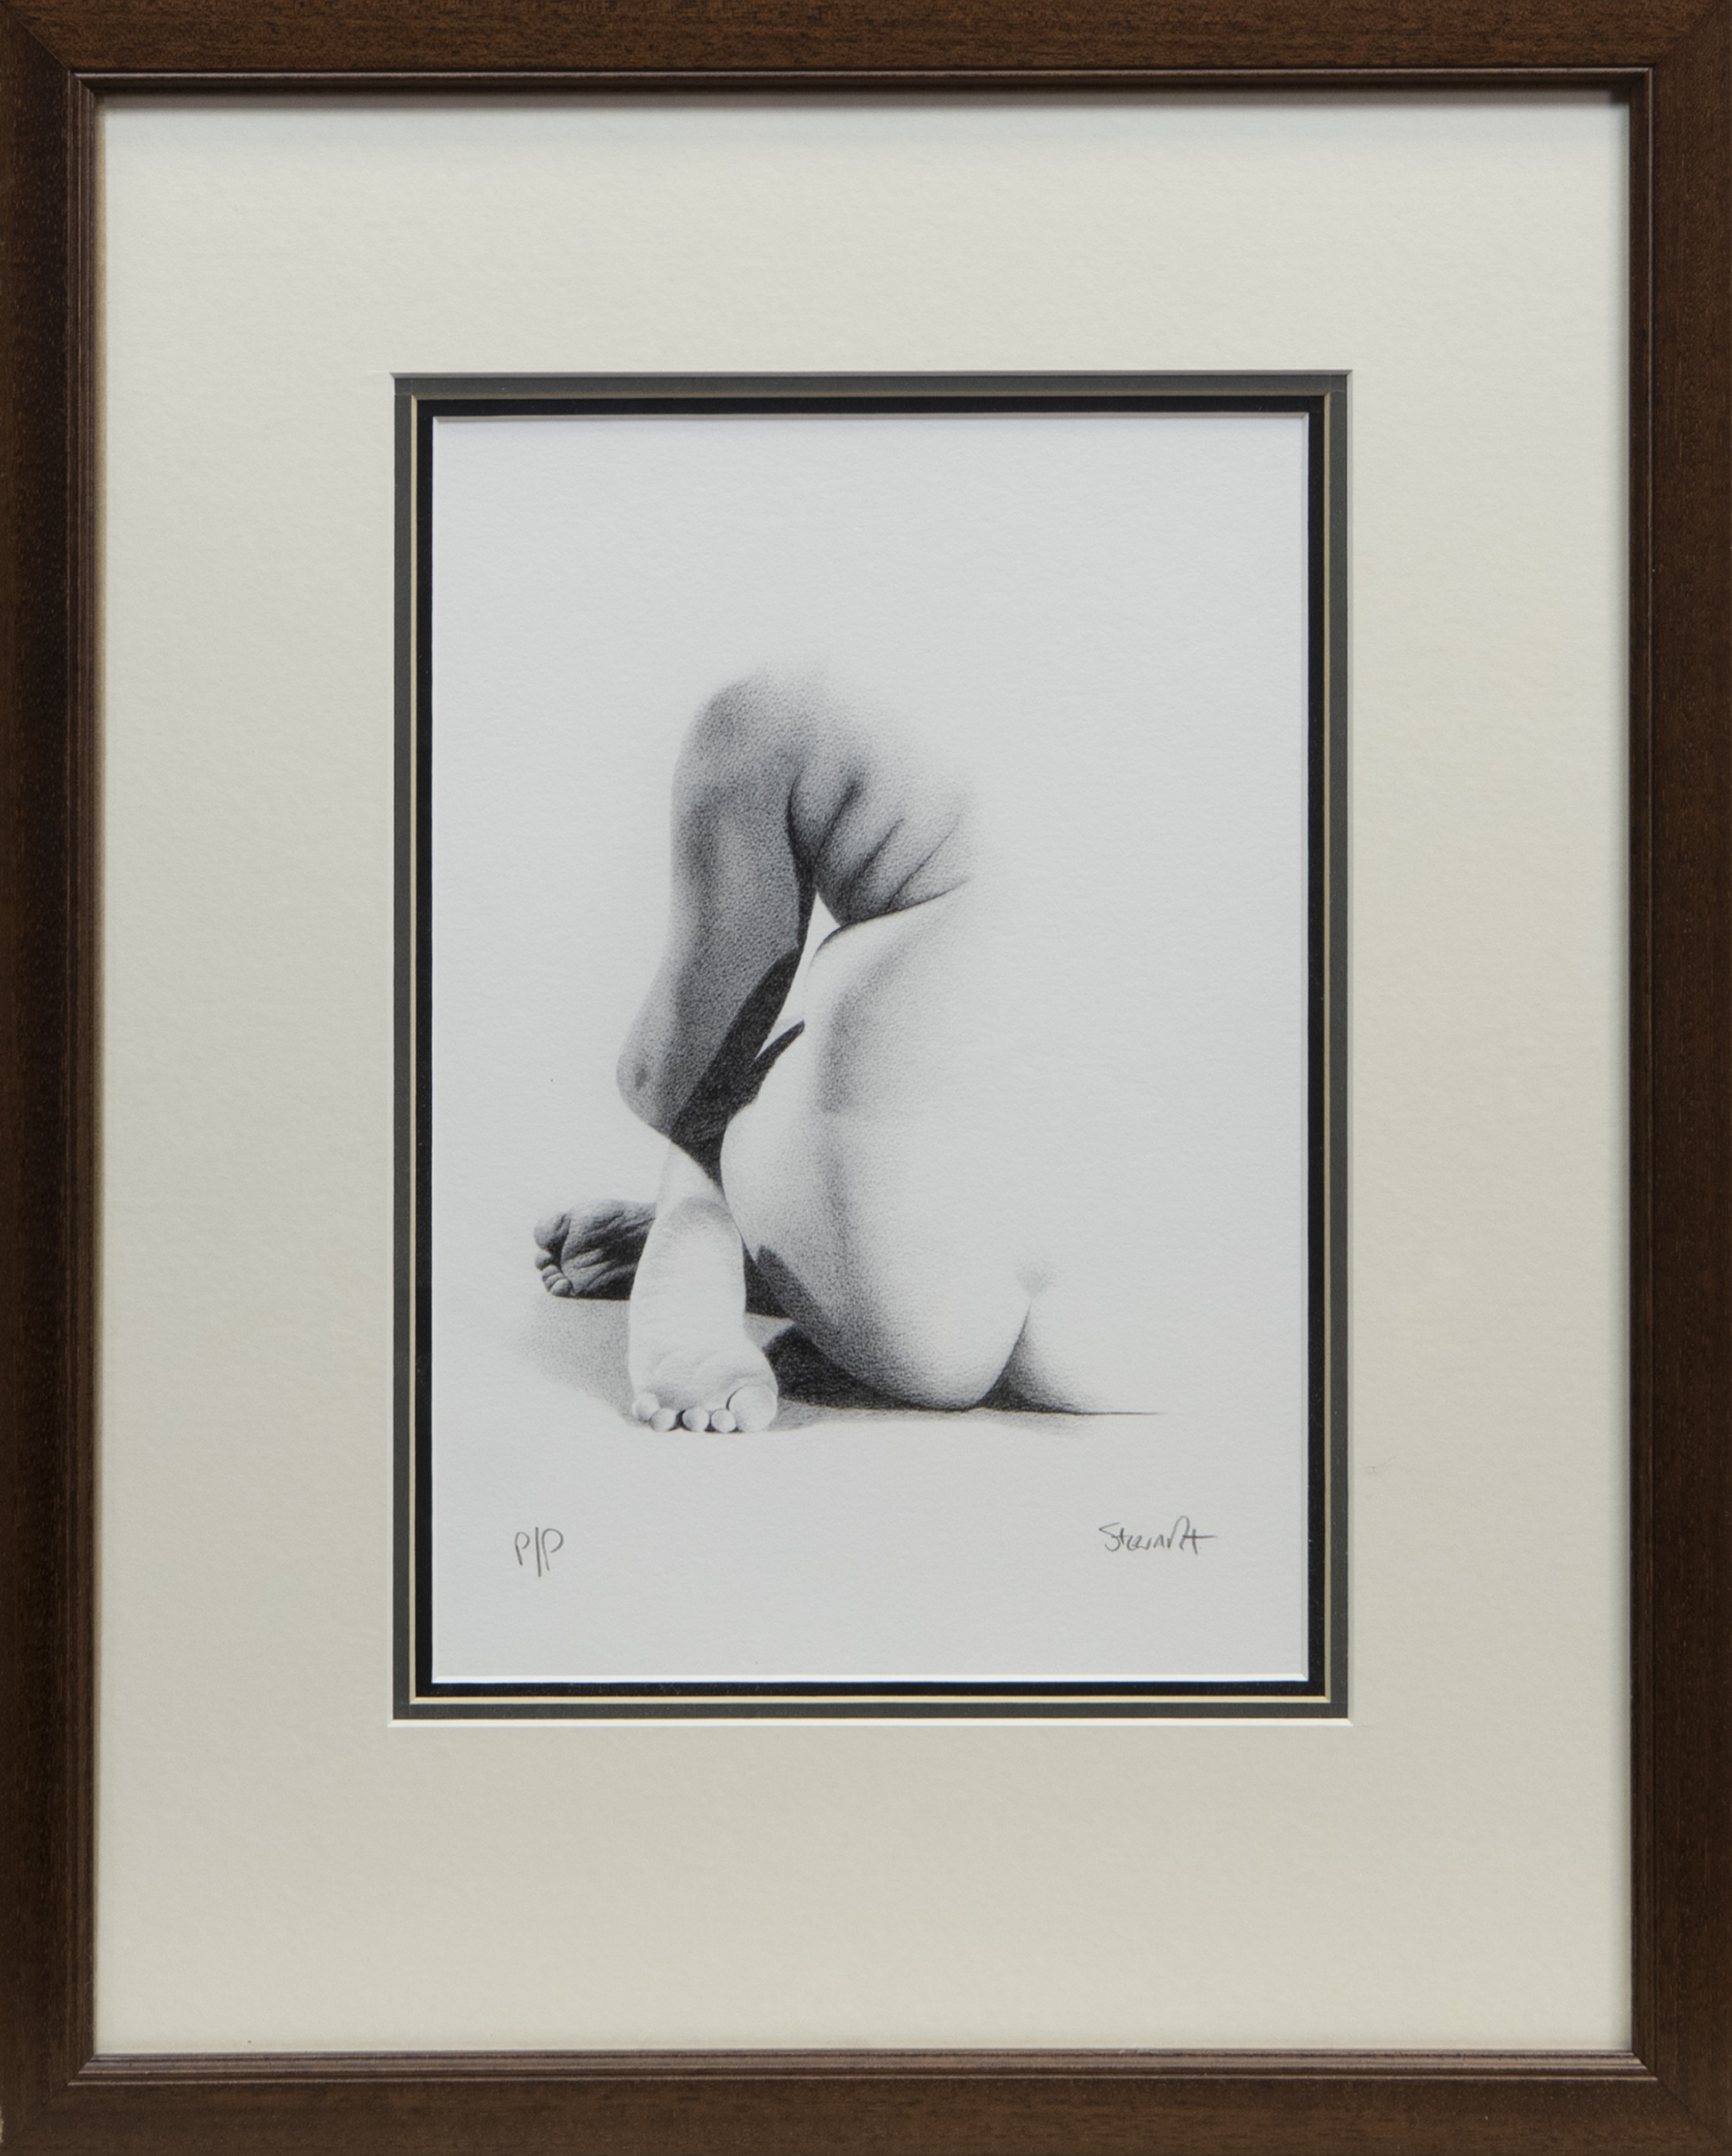 NUDE STUDY, A PRINT BY LEE STEWART